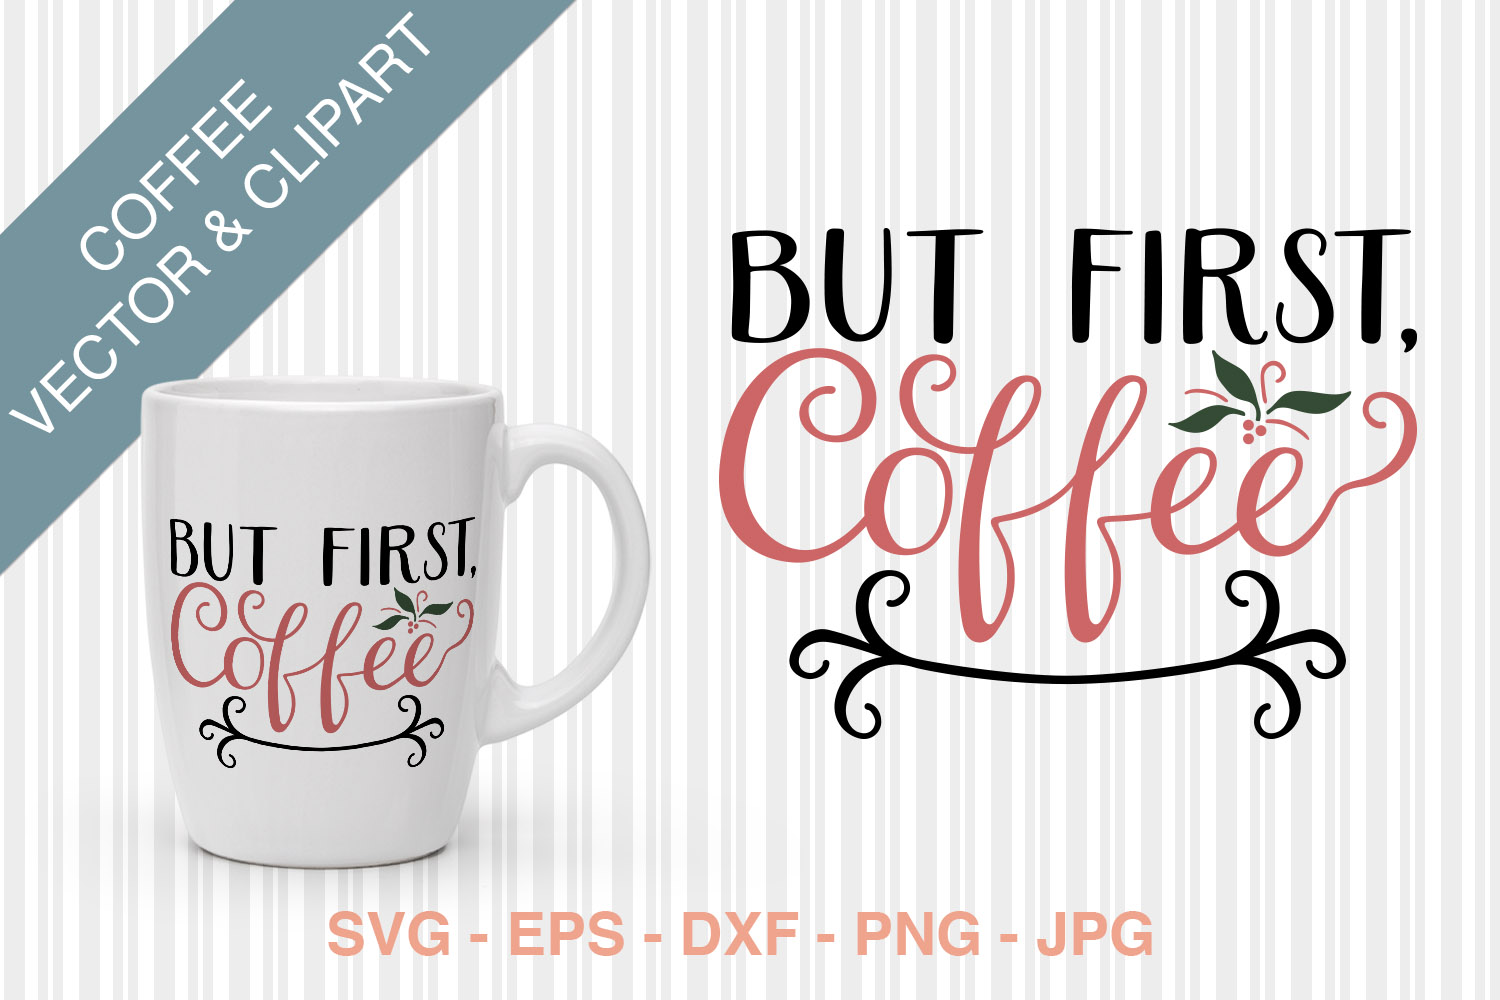 Download Free But First Coffee Svg Graphic By Kristy Hatswell Creative Fabrica for Cricut Explore, Silhouette and other cutting machines.